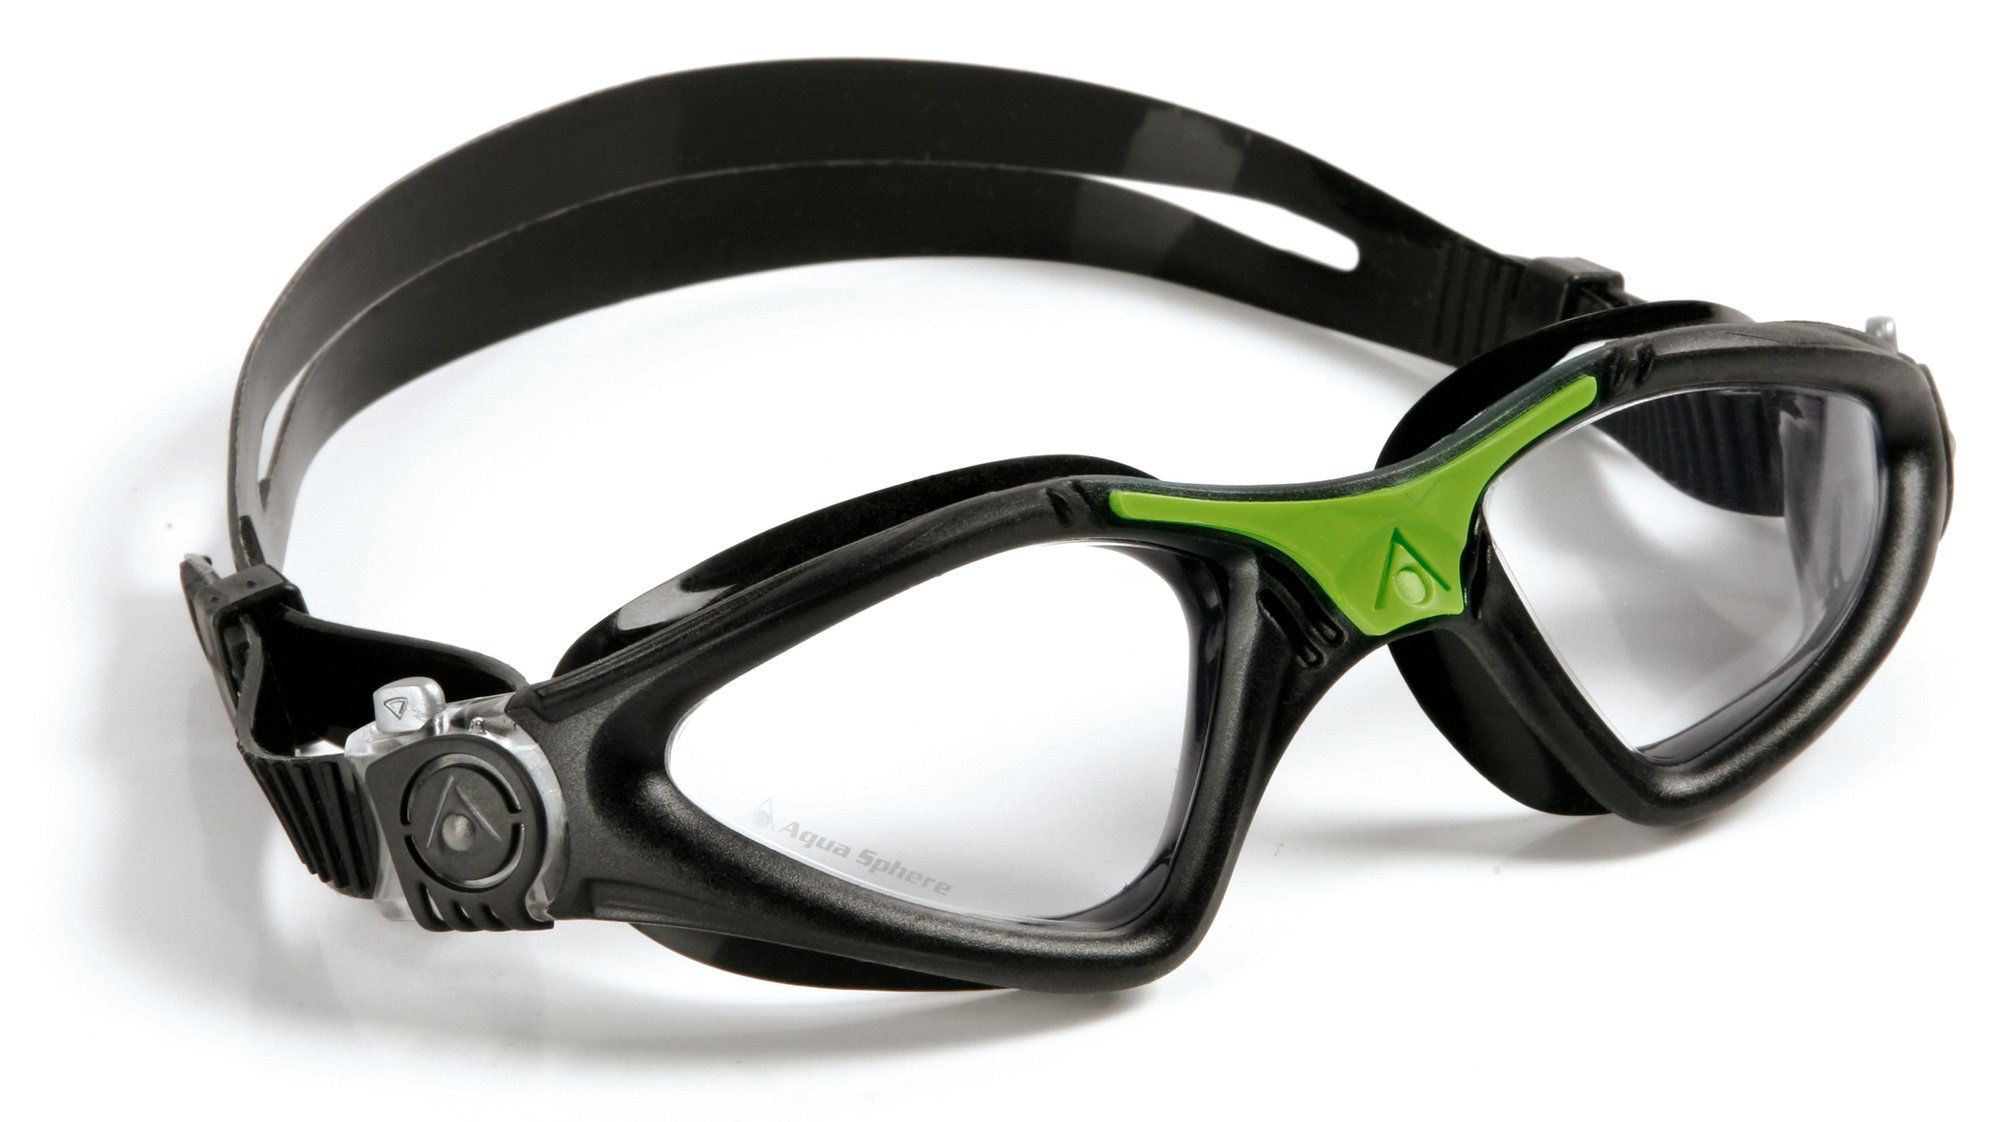 a2726f5cacc The Aqua Sphere brand has become known for its signature 180-degree  side-to-side field of vision